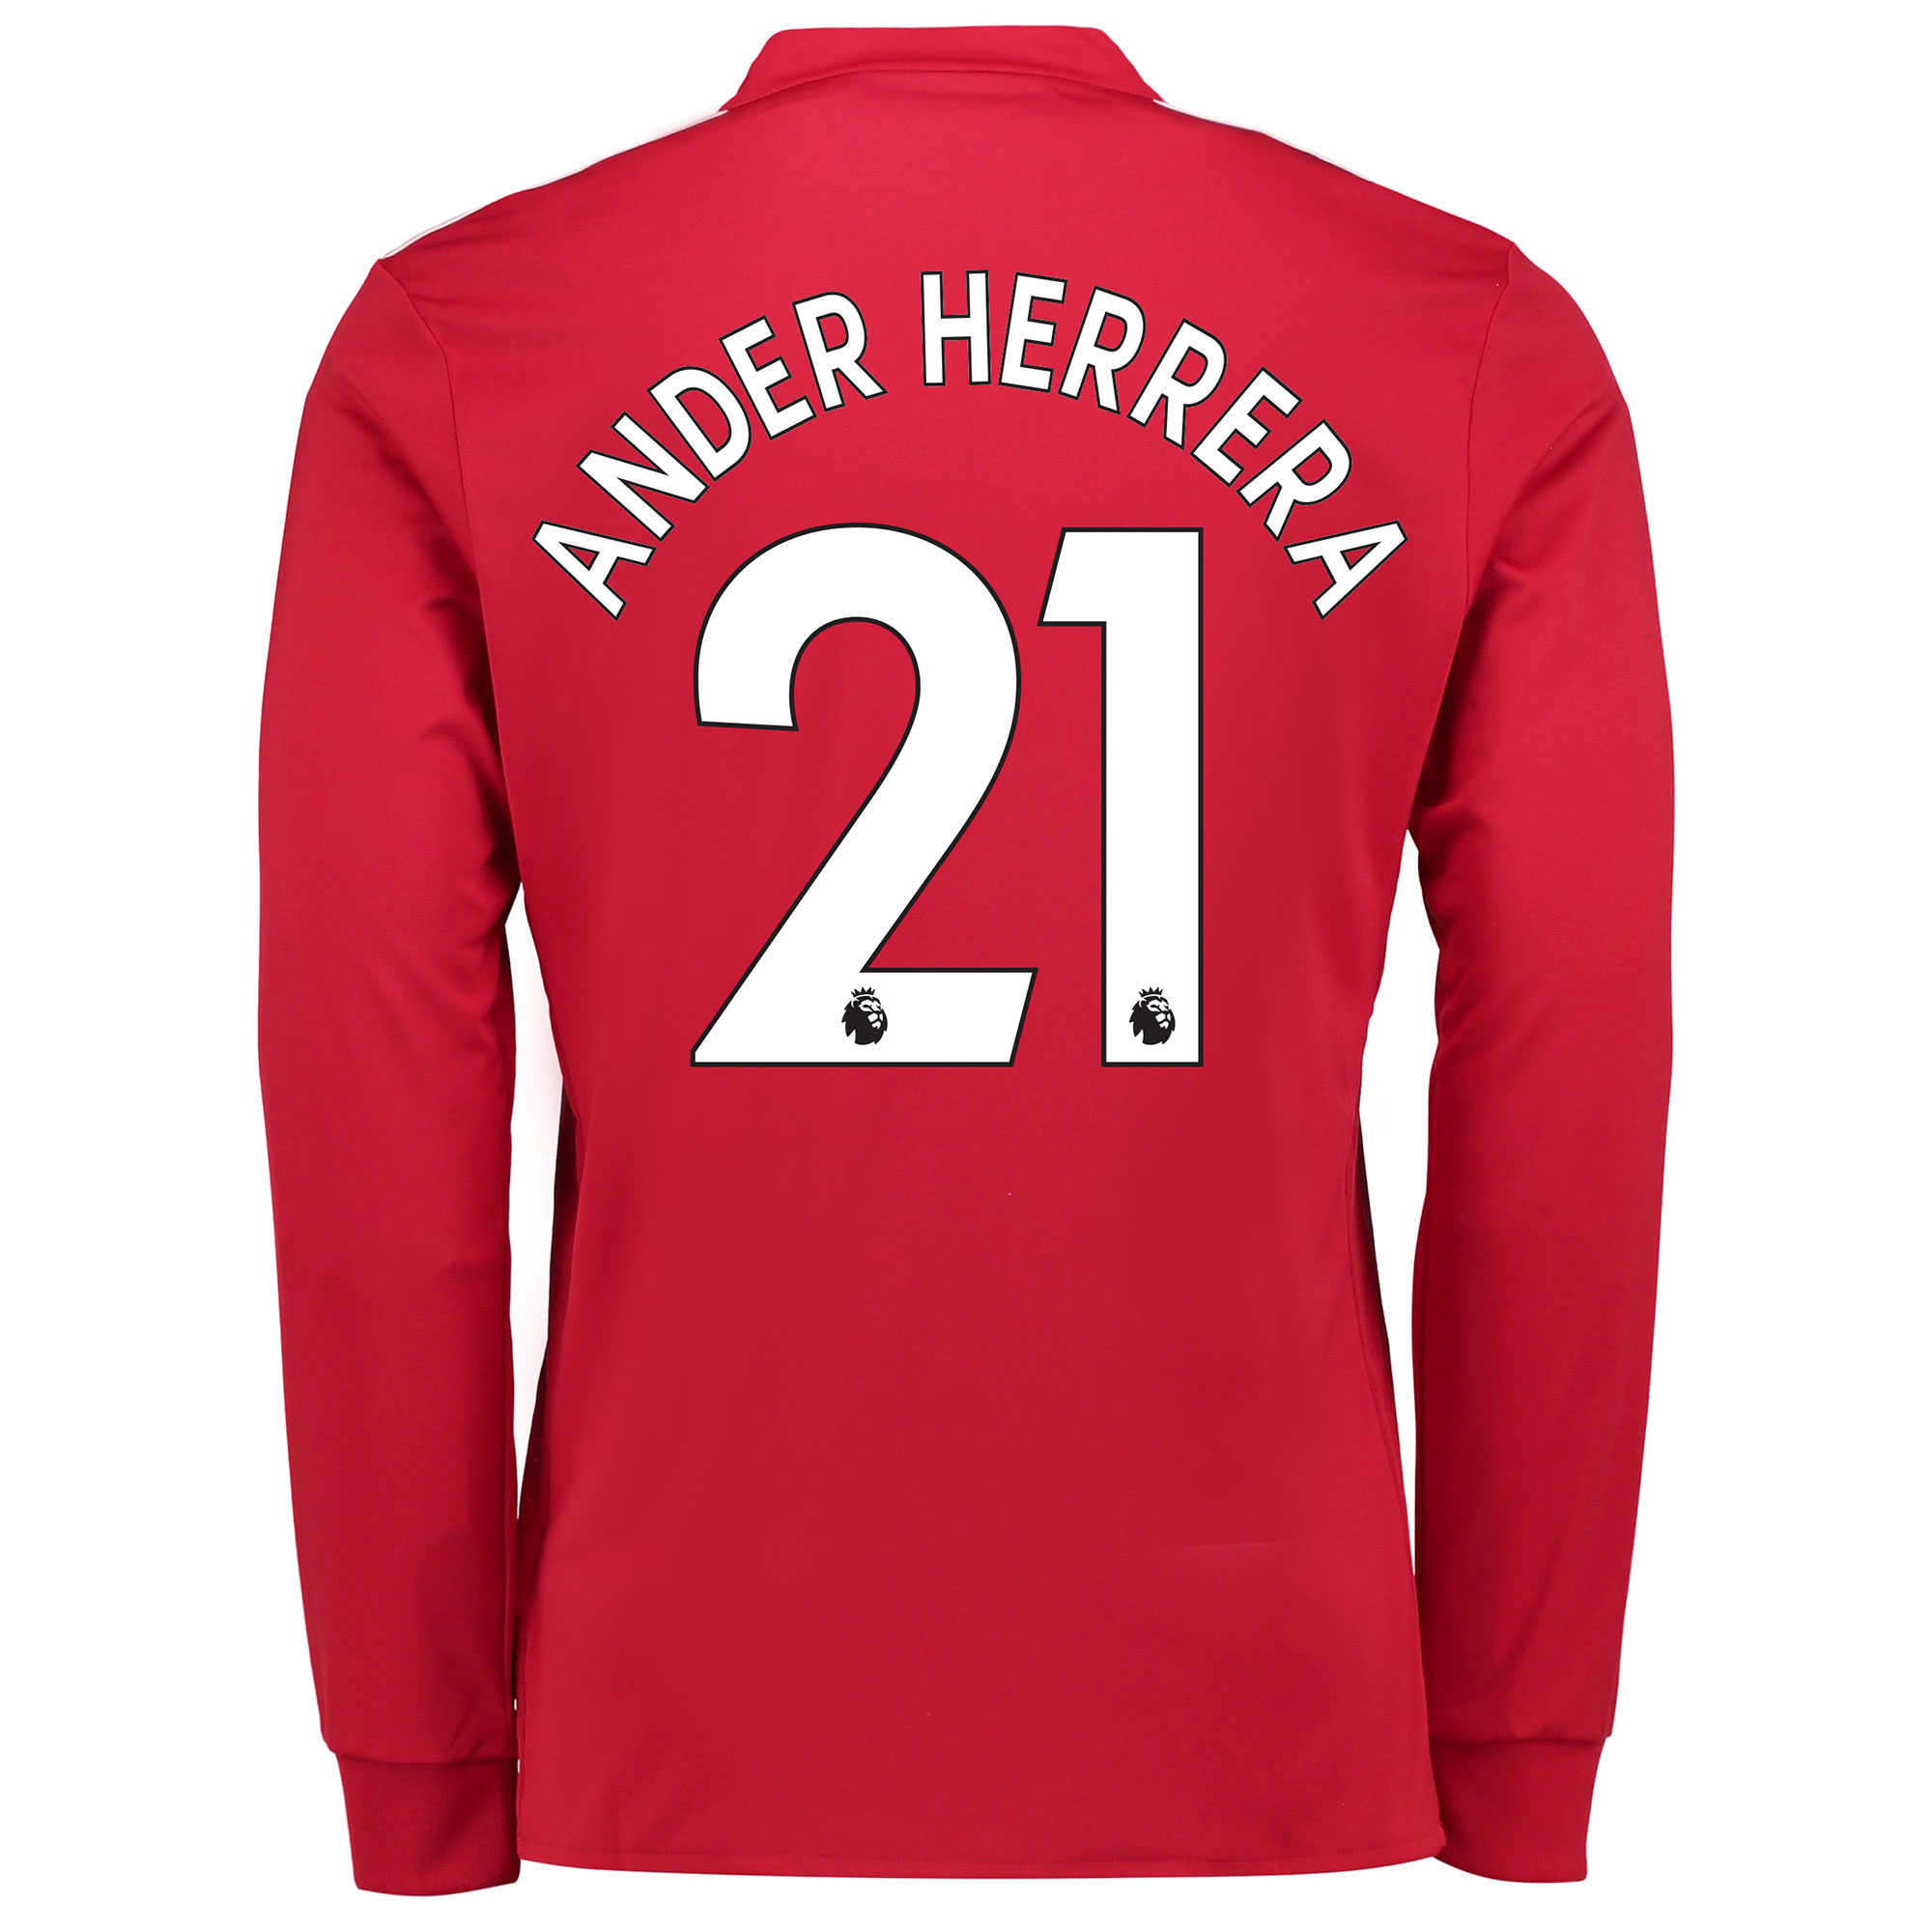 Manchester United Home Shirt 2017-18 - Long Sleeve with Ander Herrera